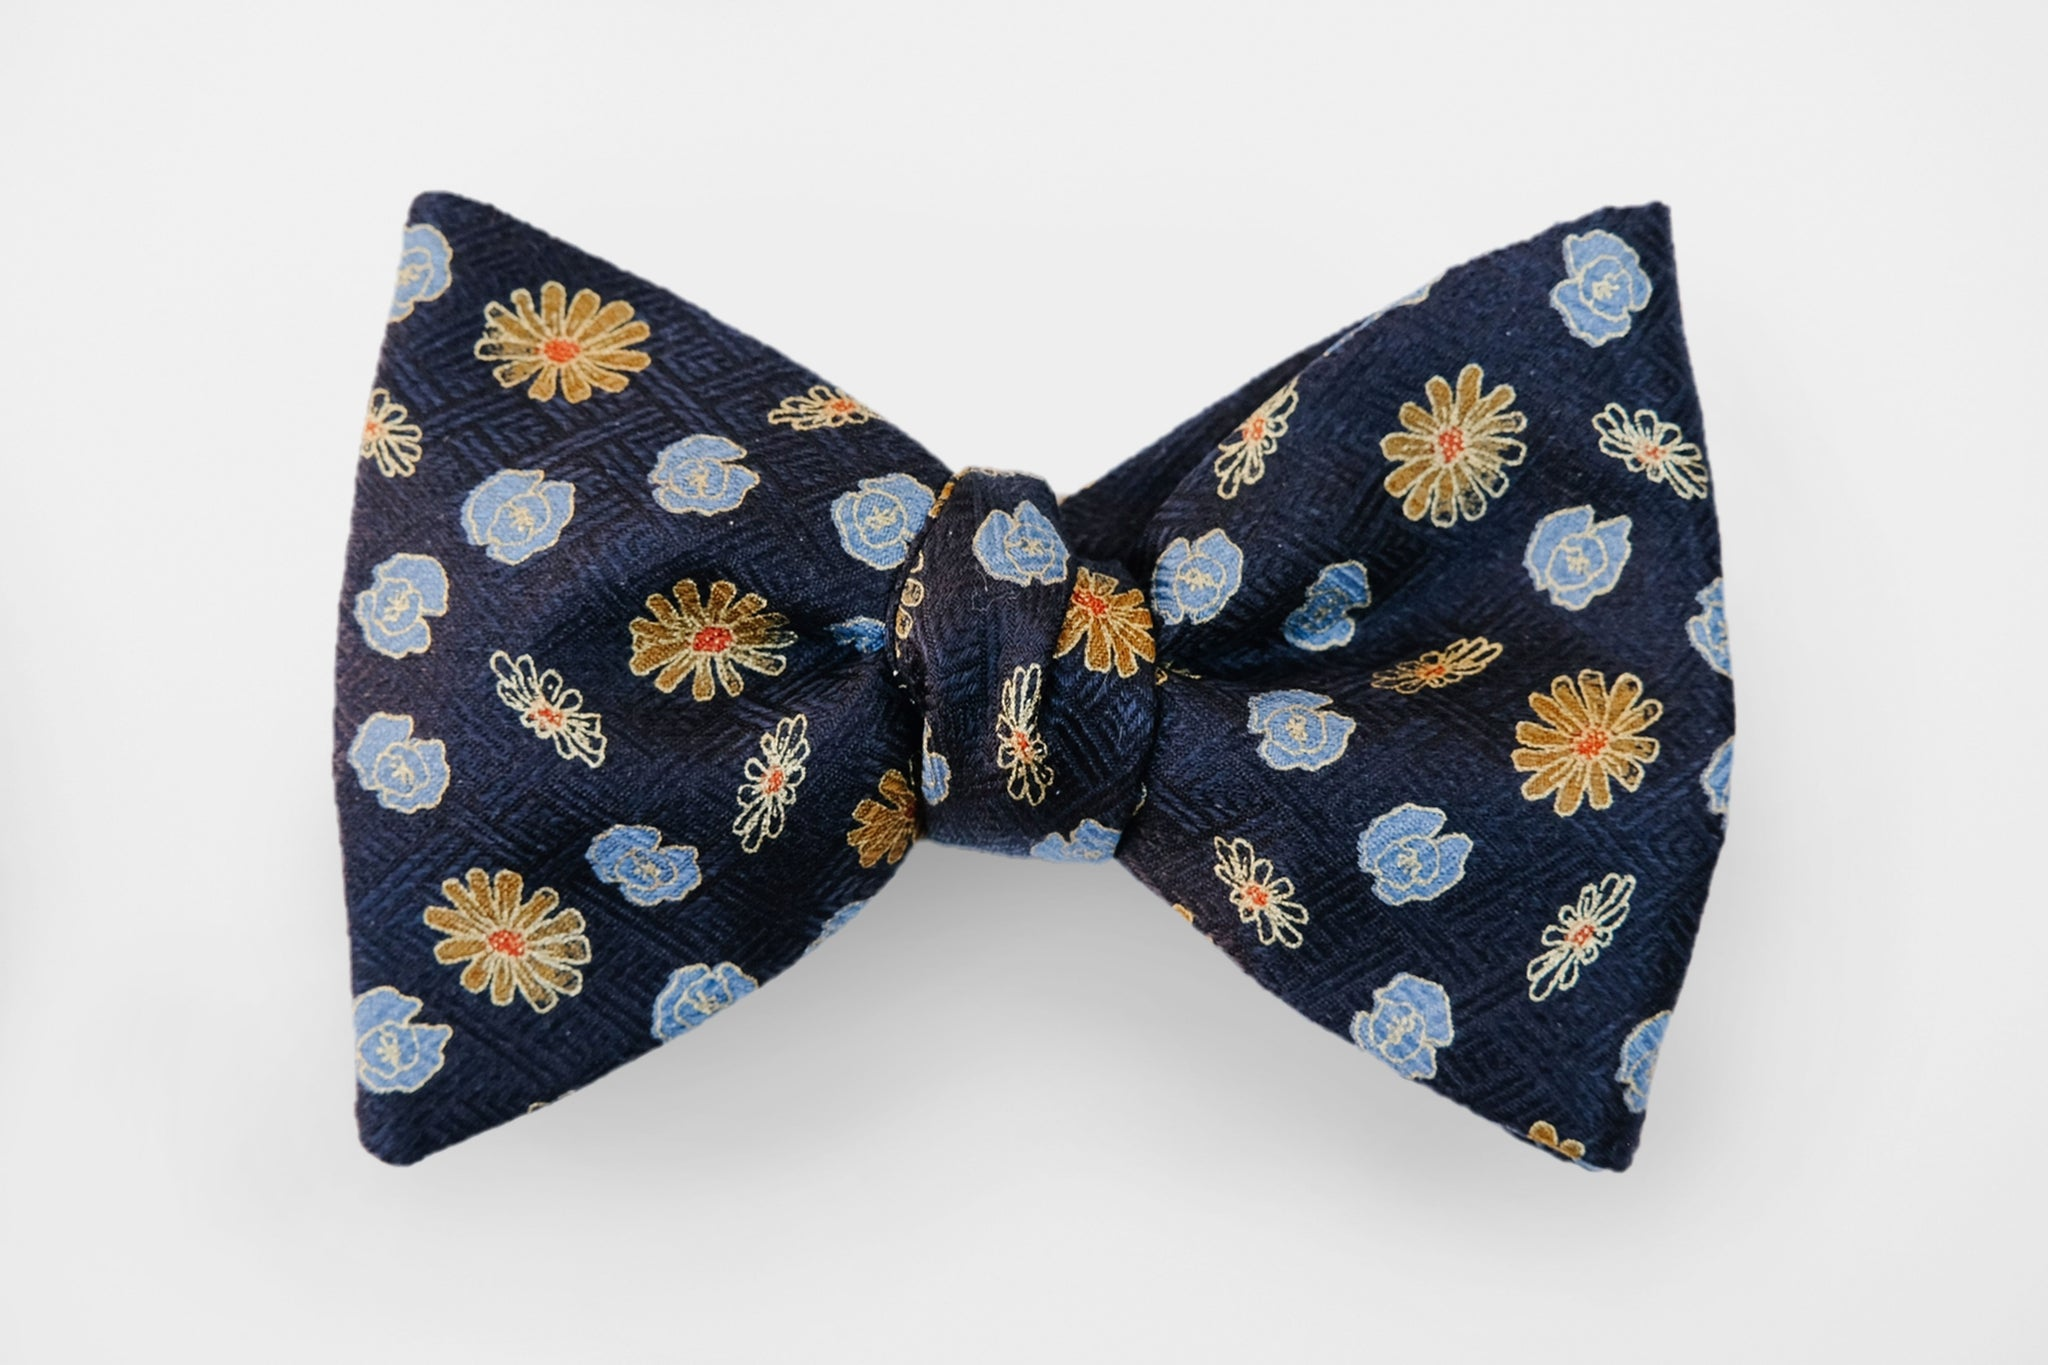 Black/Gold Printed Bow Tie